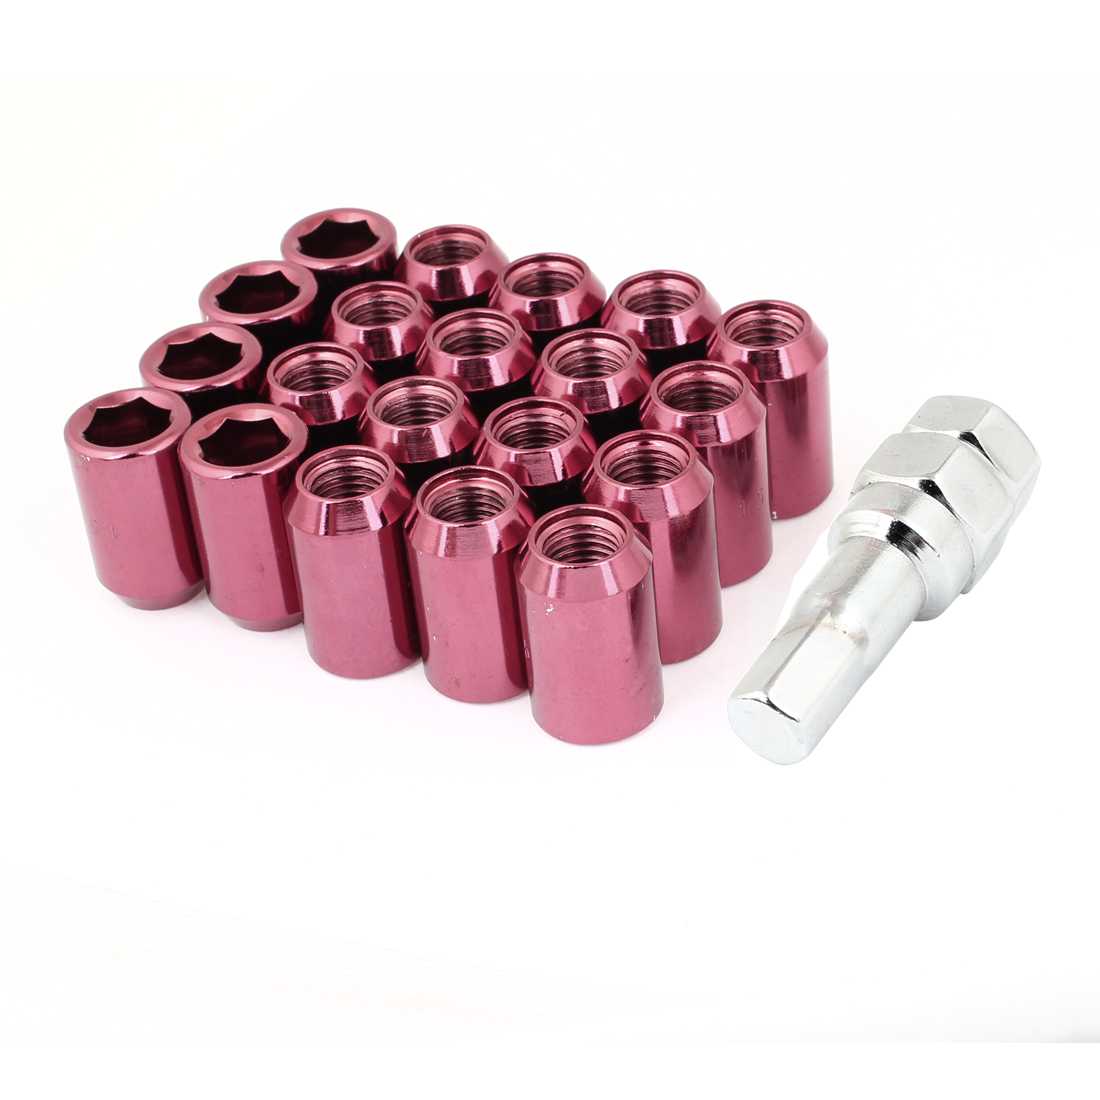 Unique Bargains 20 x Burgundy 1/4 PT Threaded Car Vehicle Tire Lug Wheel Nut w Hex Key